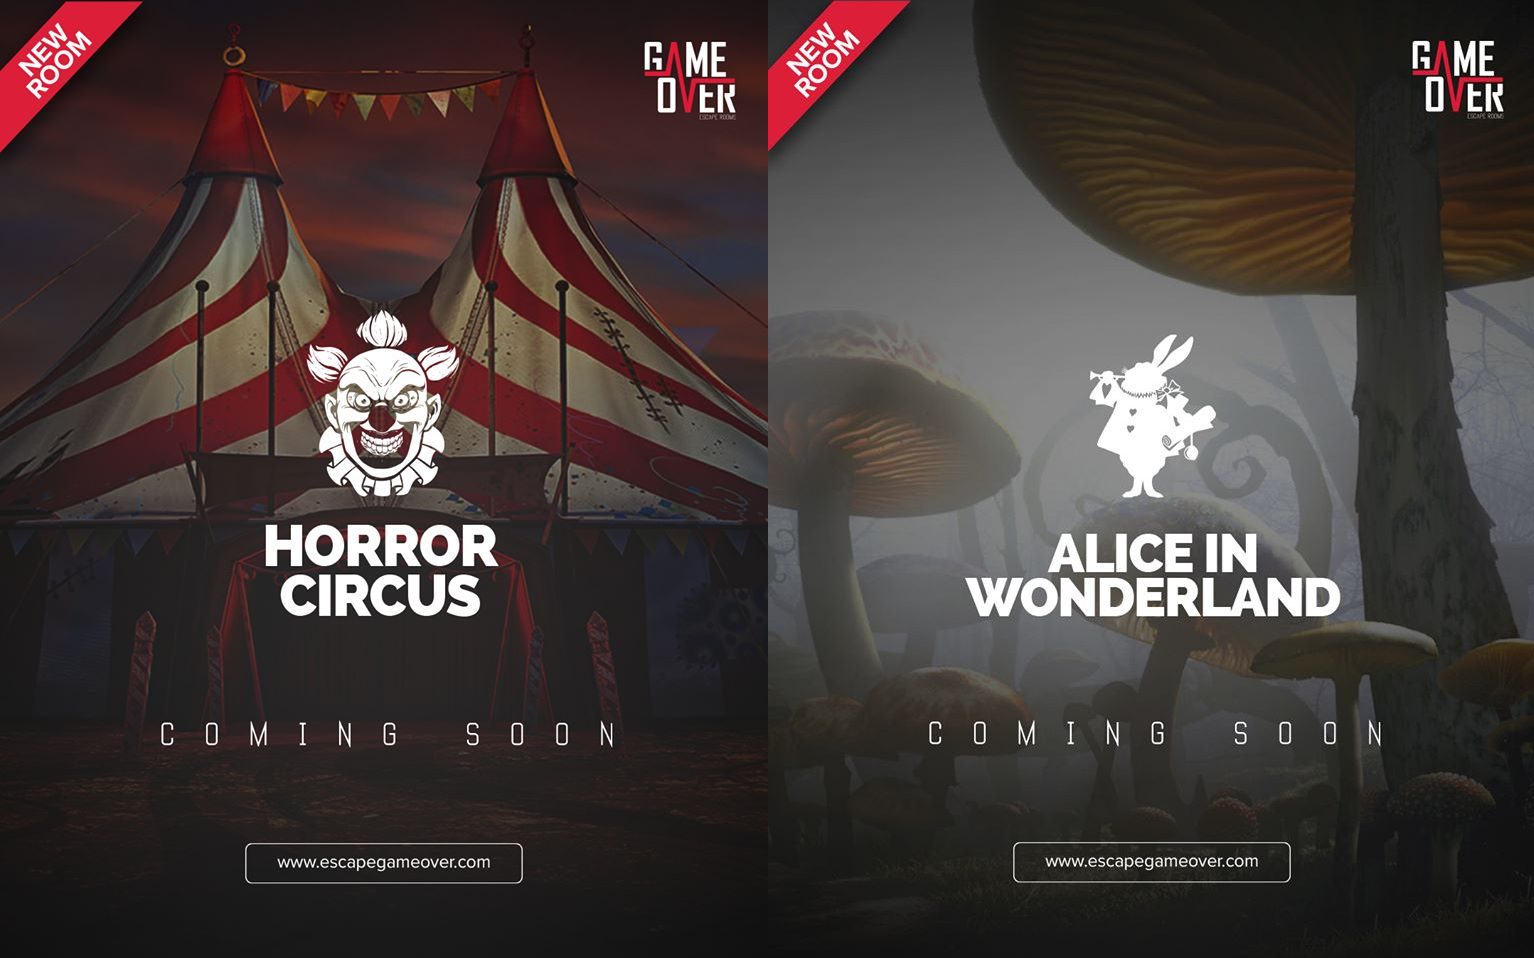 ΝΕΑ ΔΩΜΑΤΙΑ HORROR CIRCUS & ALICE IN WONDERLAND